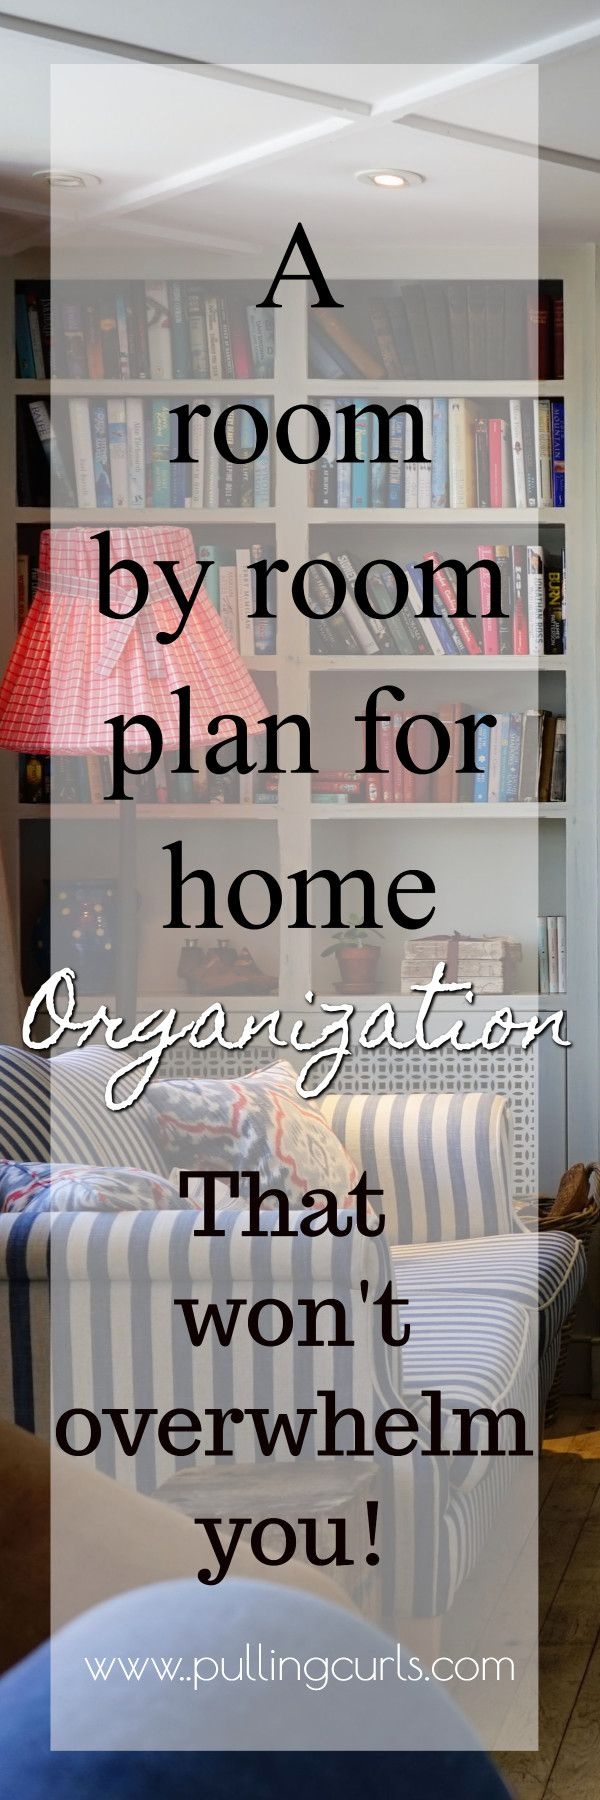 17021 Best Bloggers 39 Best Home Tips And Tricks Images On Pinterest Organizing Ideas Cleaning